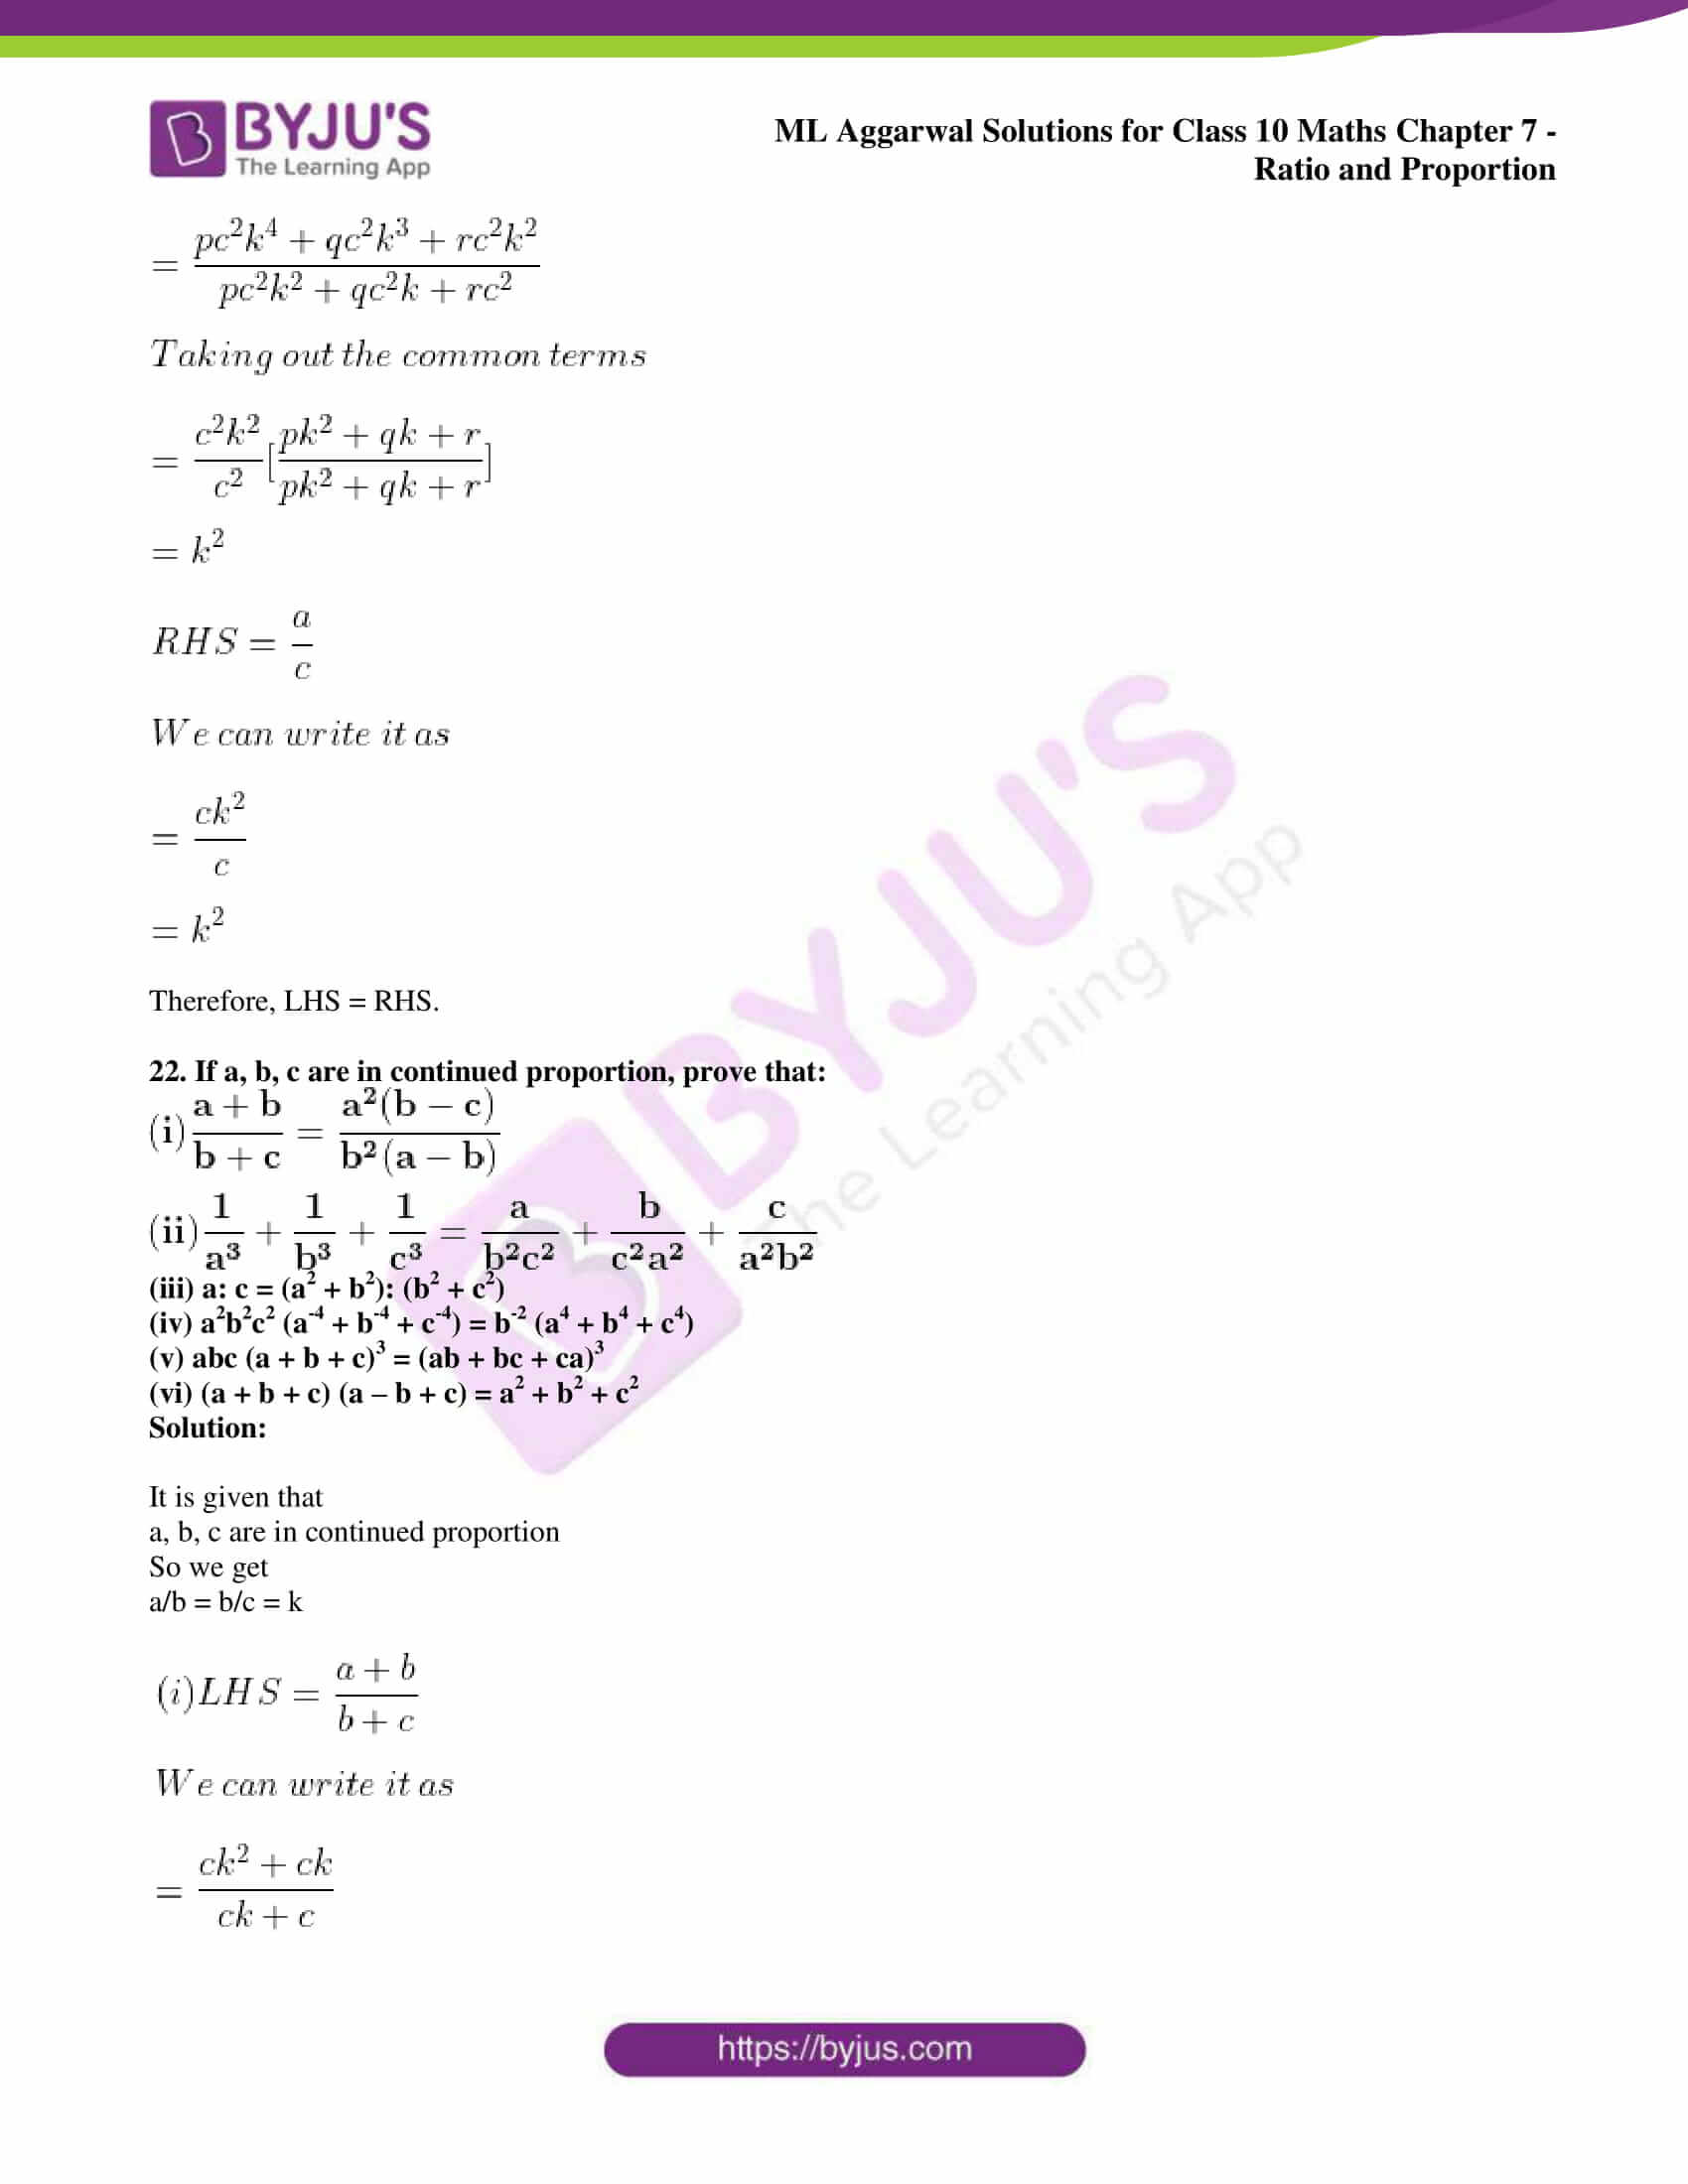 ml aggarwal solutions for class 10 maths chapter 7 36